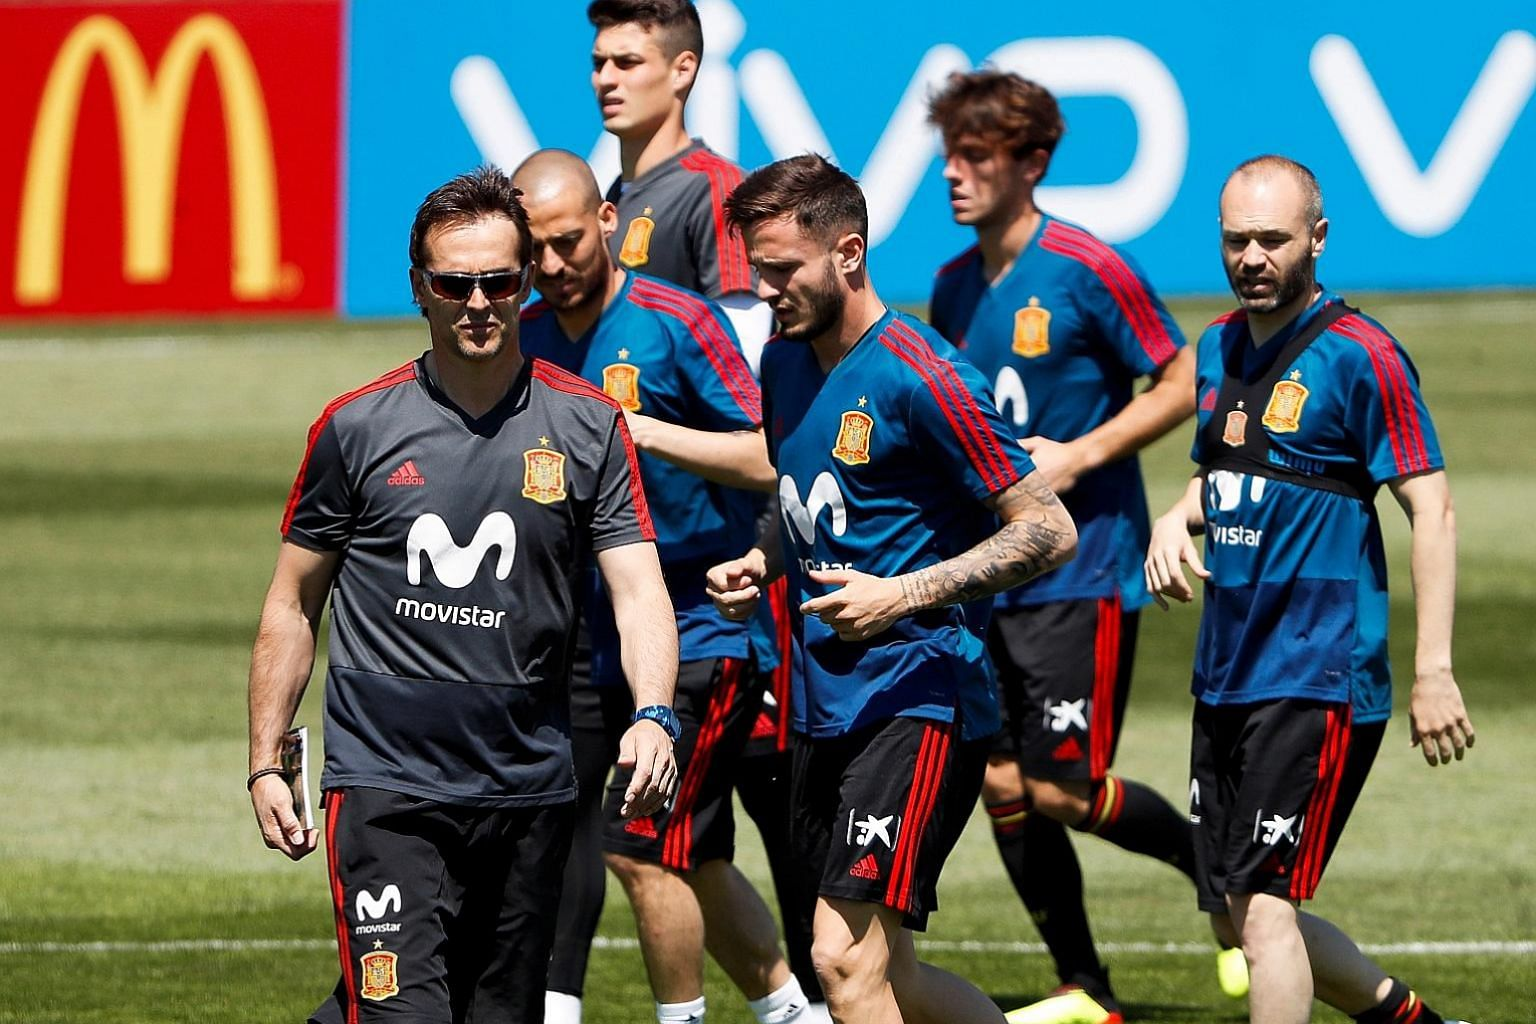 Spain head coach Julen Lopetegui (far left) during training in Krasnodar, Russia, on Tuesday - the day he was named as Zinedine Zidane's replacement at Real Madrid. Spain sporting director Fernando Hierro (above) will take charge of the national side